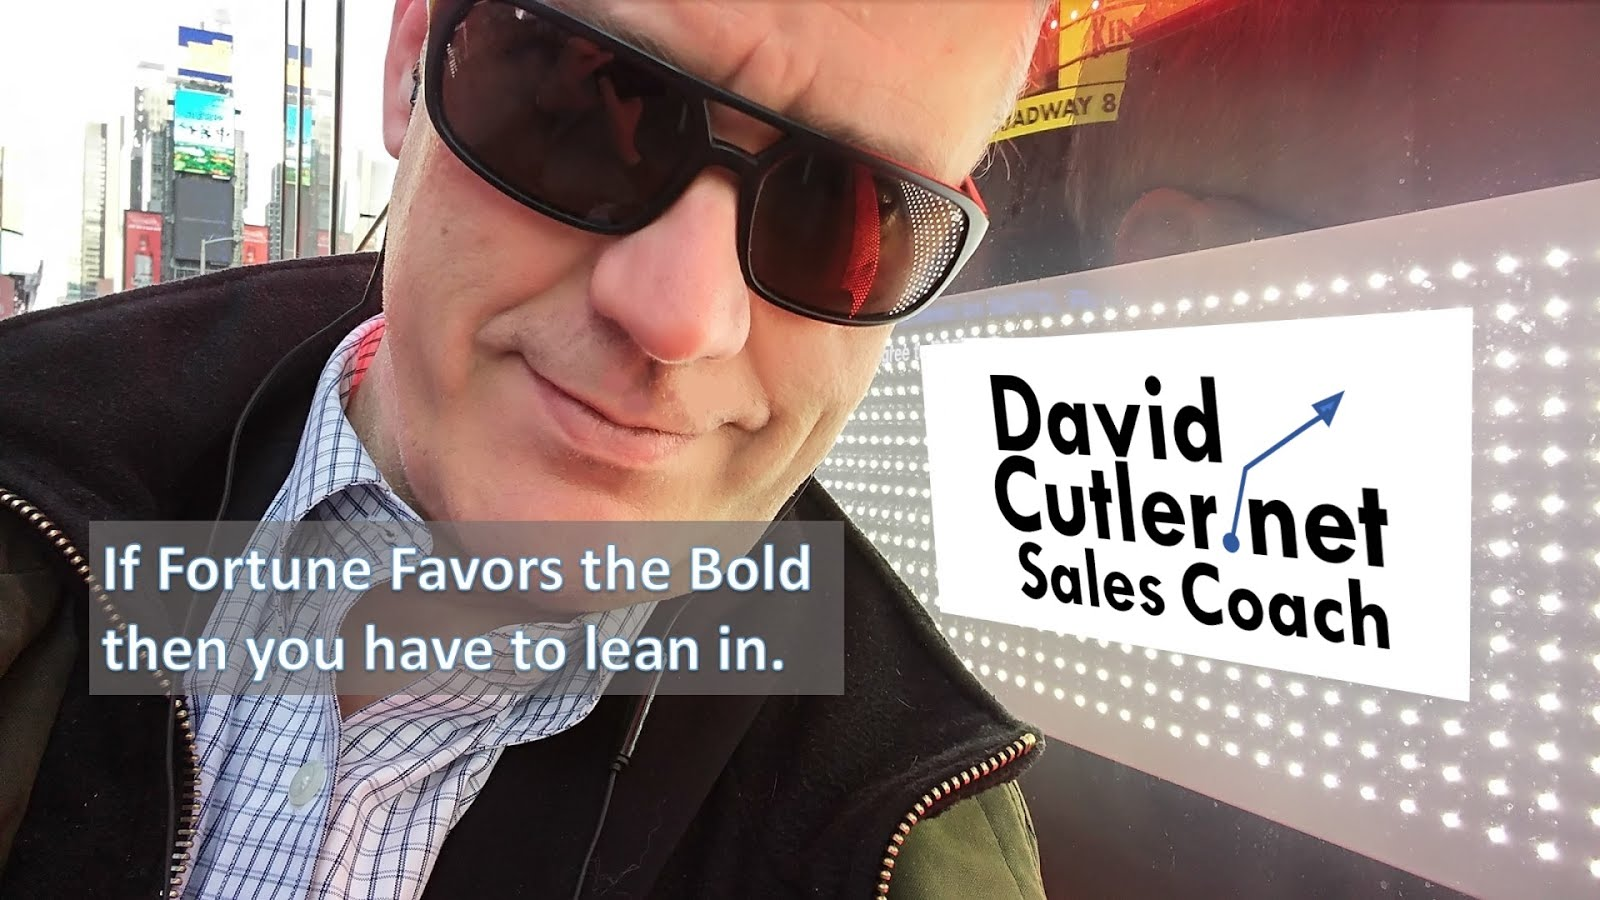 David Cutler Sales Coach